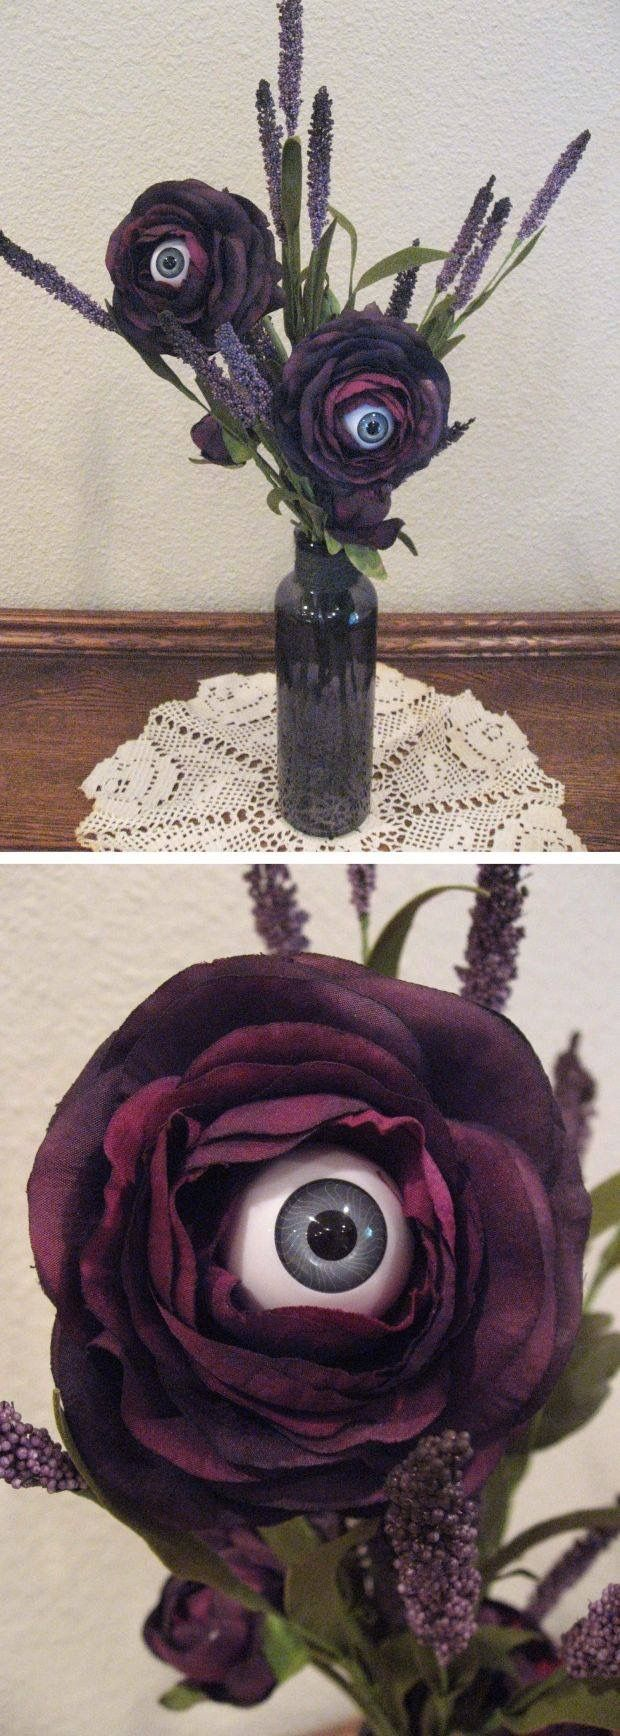 Creepy eyeball in flowers Halloween Office decor Pinterest - Halloween Office Decorations Ideas